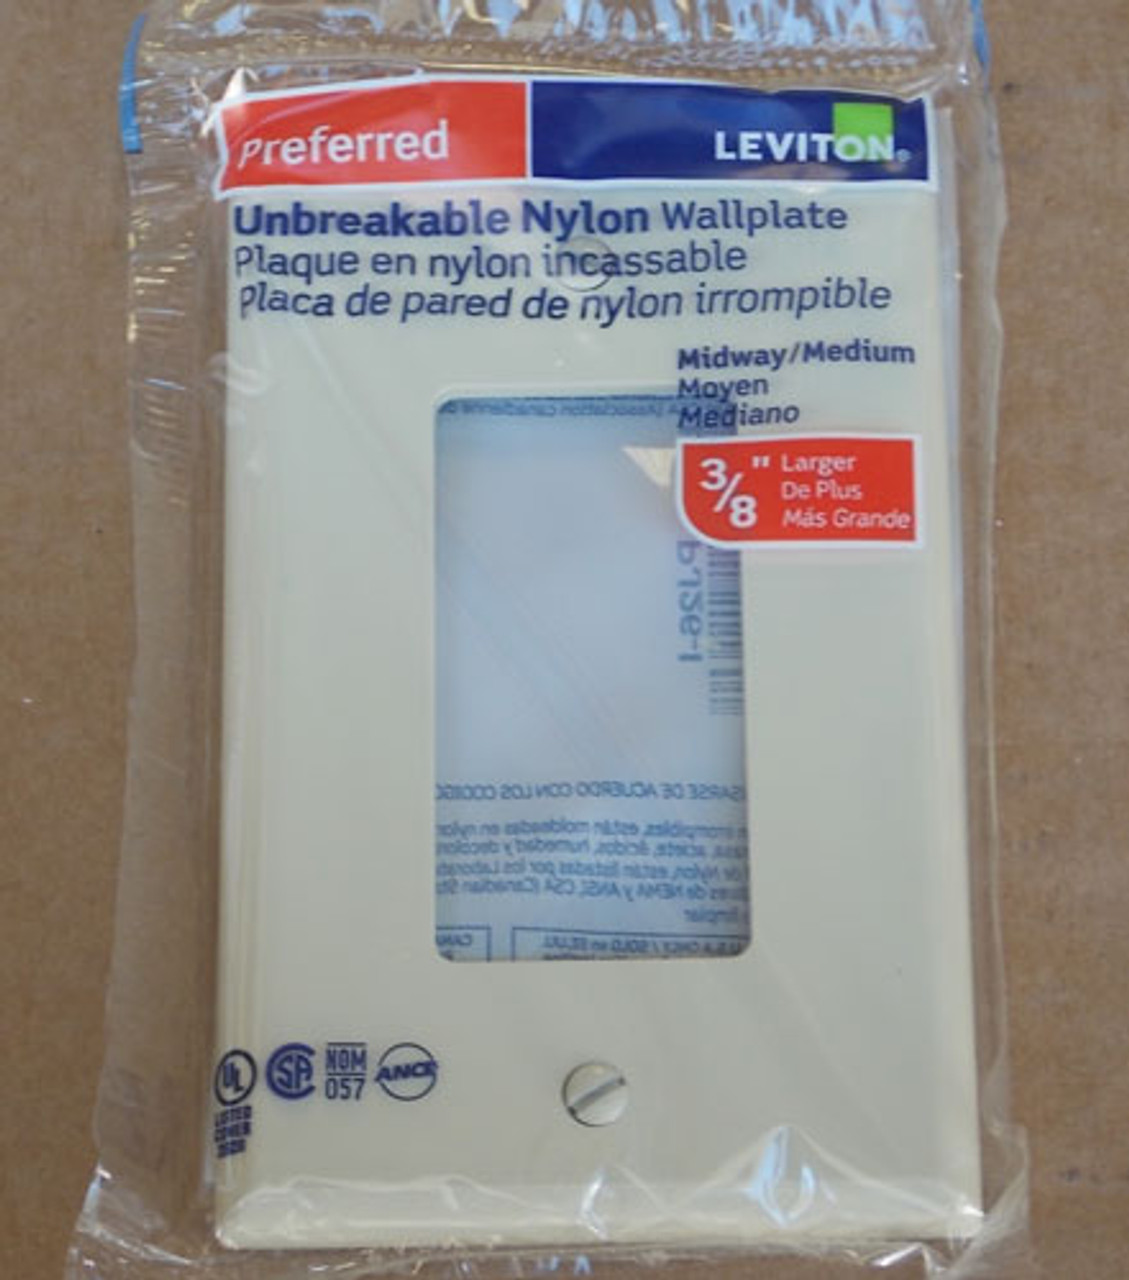 Leviton R51-PJ26-I 1 Gang Midway Unbreakable Nylon Wallplate Ivory (Lot of 30)